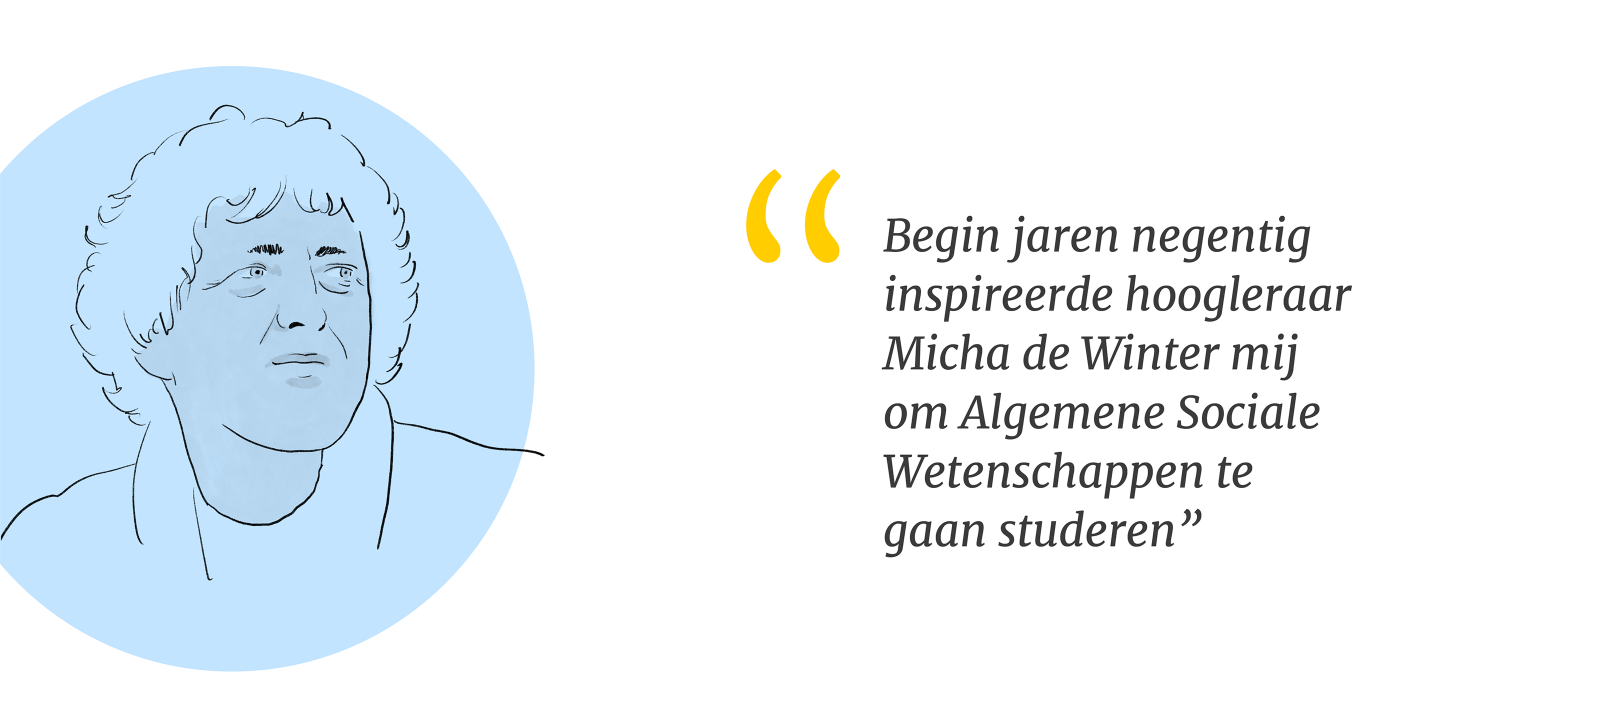 Illustratie van Micha de Winter